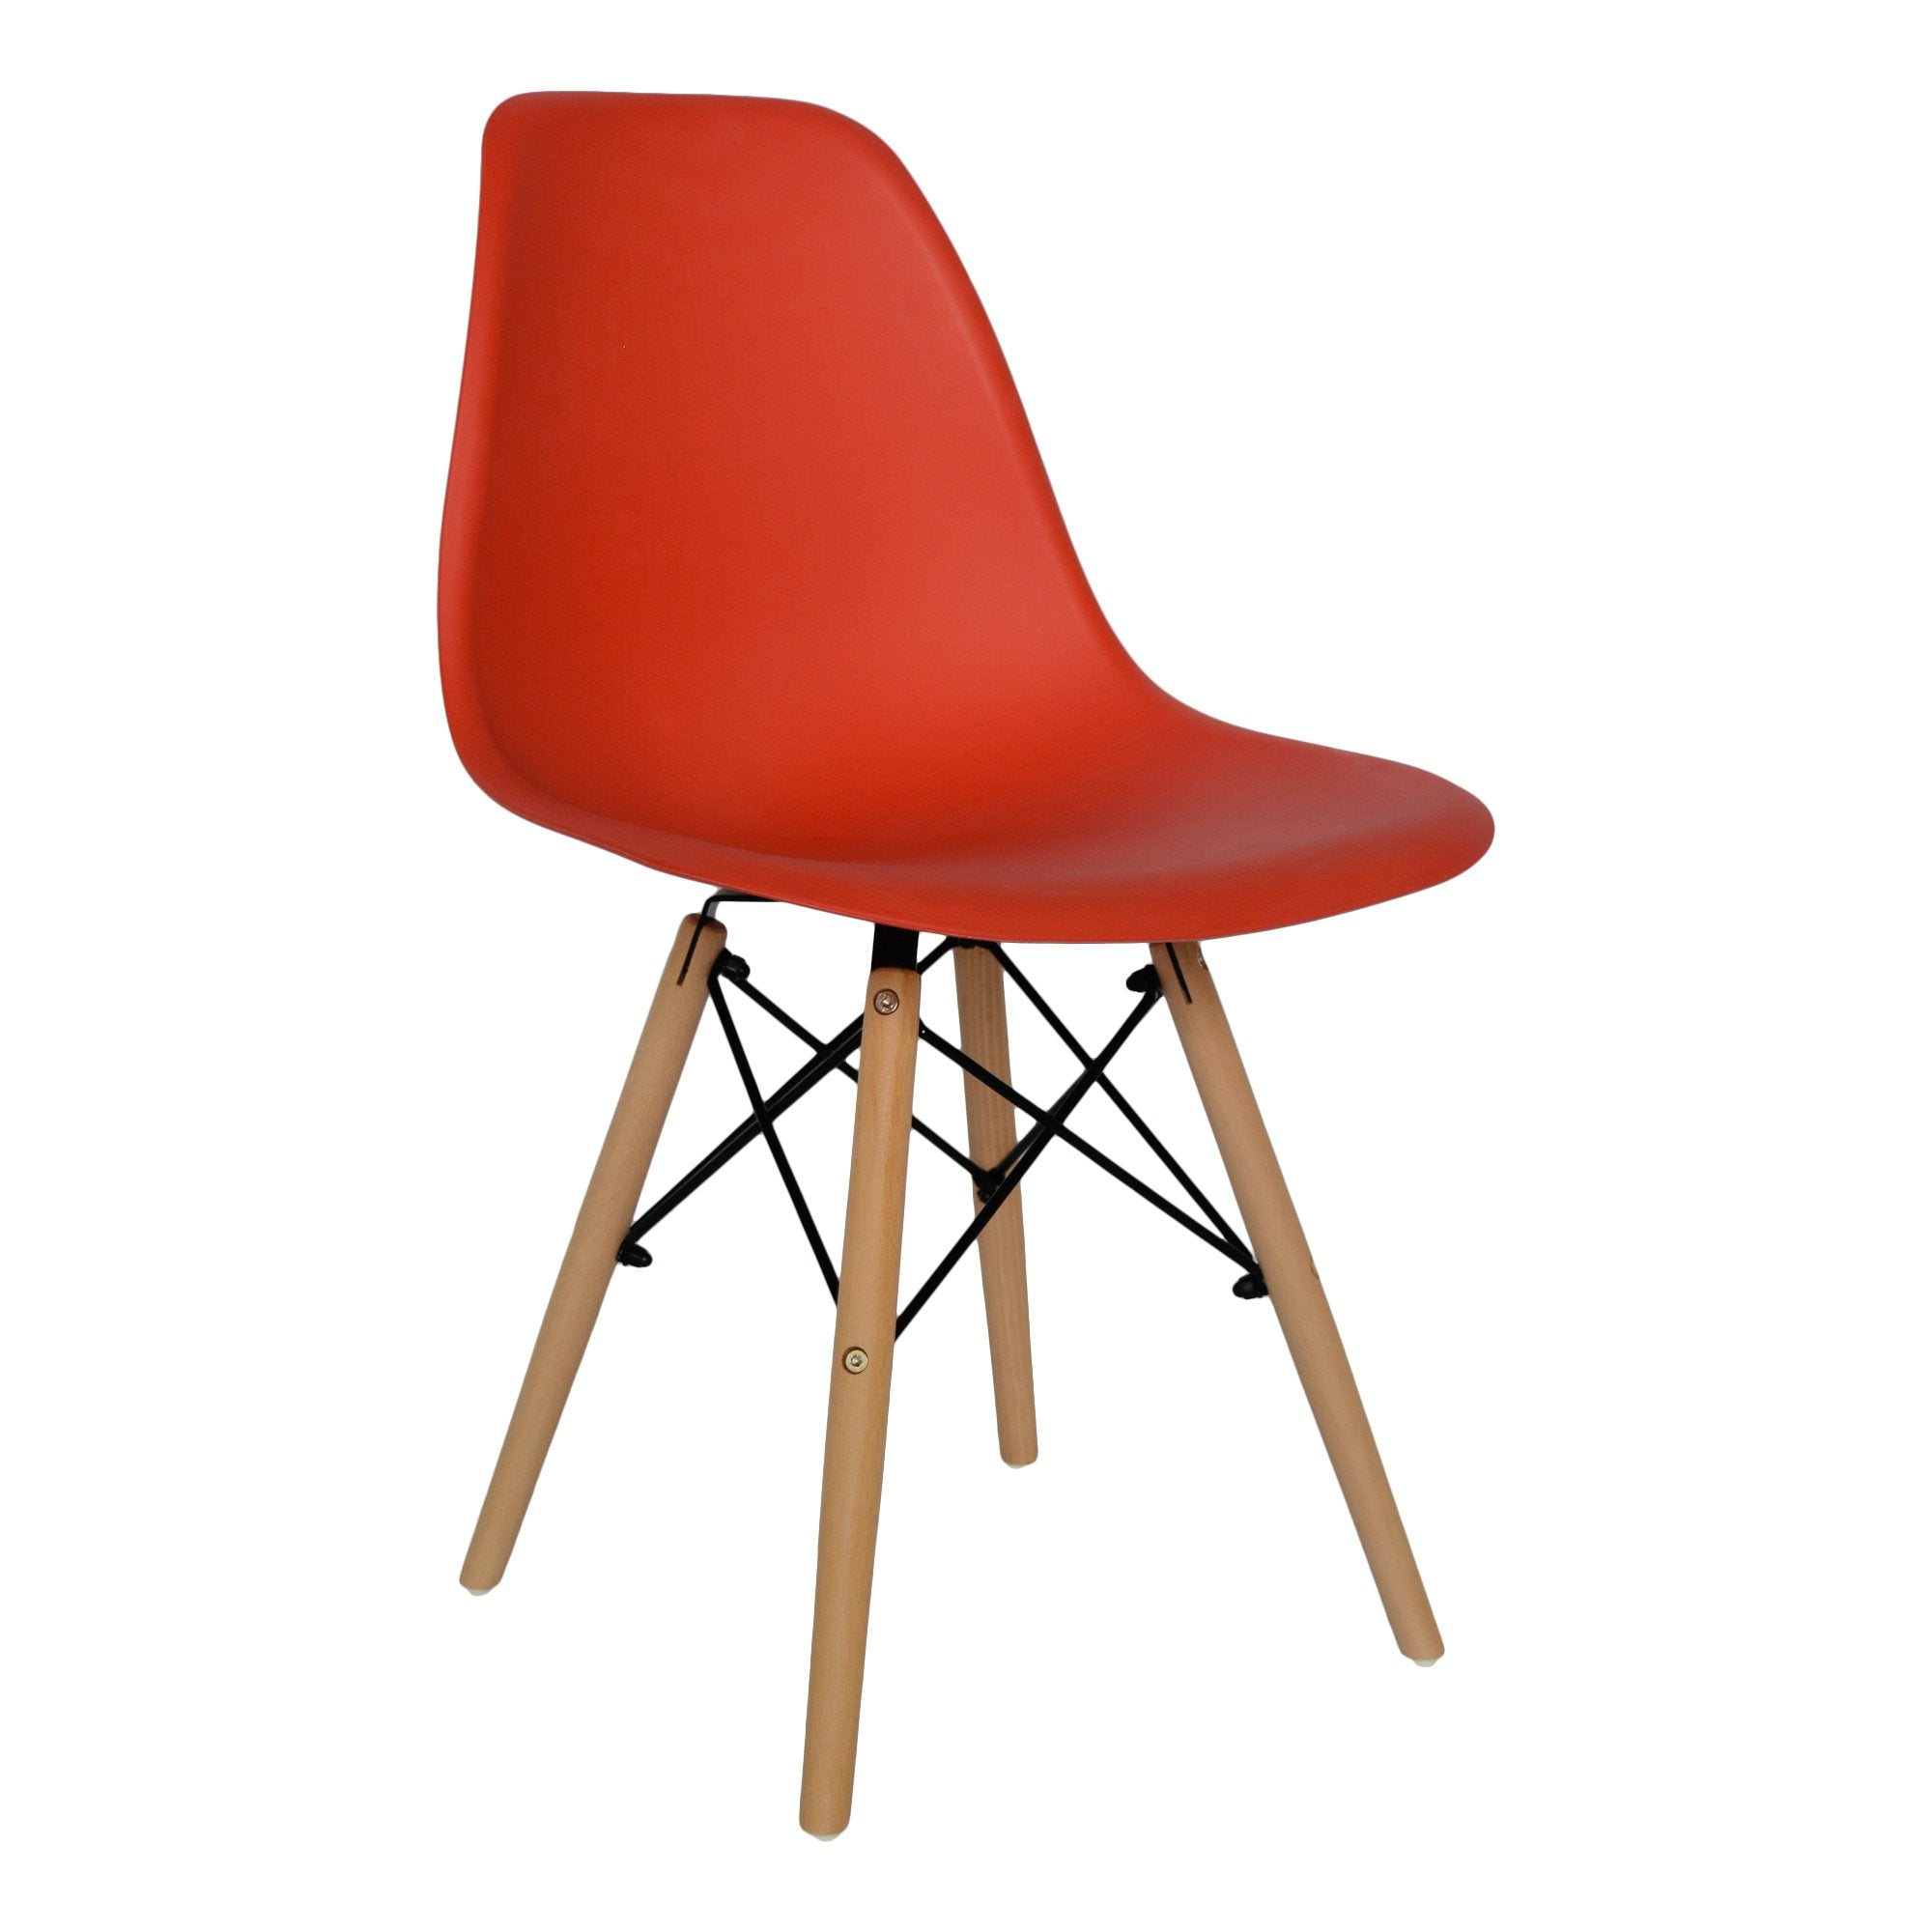 Ruby Red Chair for the Bolds from TeakTale Home Decors